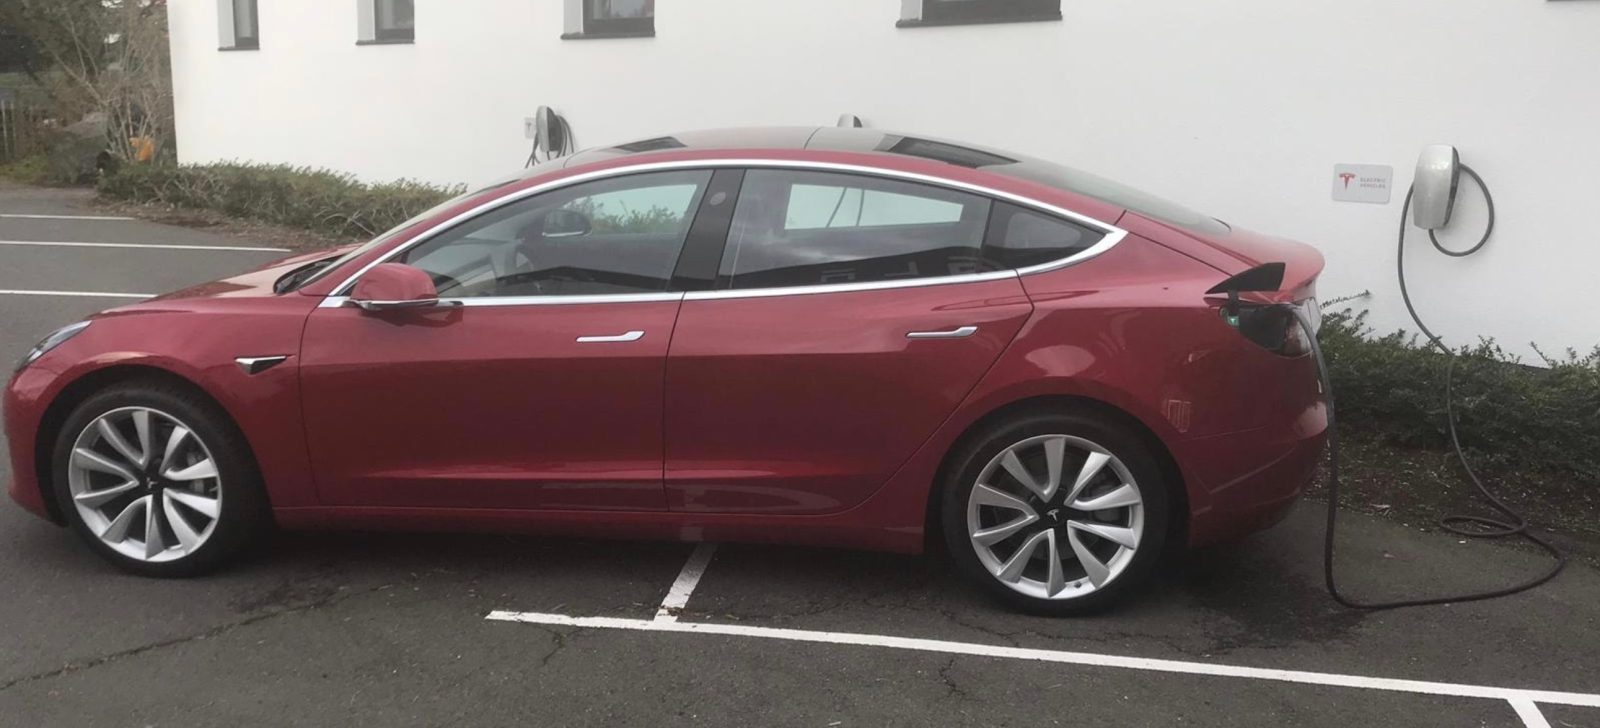 New Tesla Model 3 With Diffe Plug Spotted Ahead Of European Launch